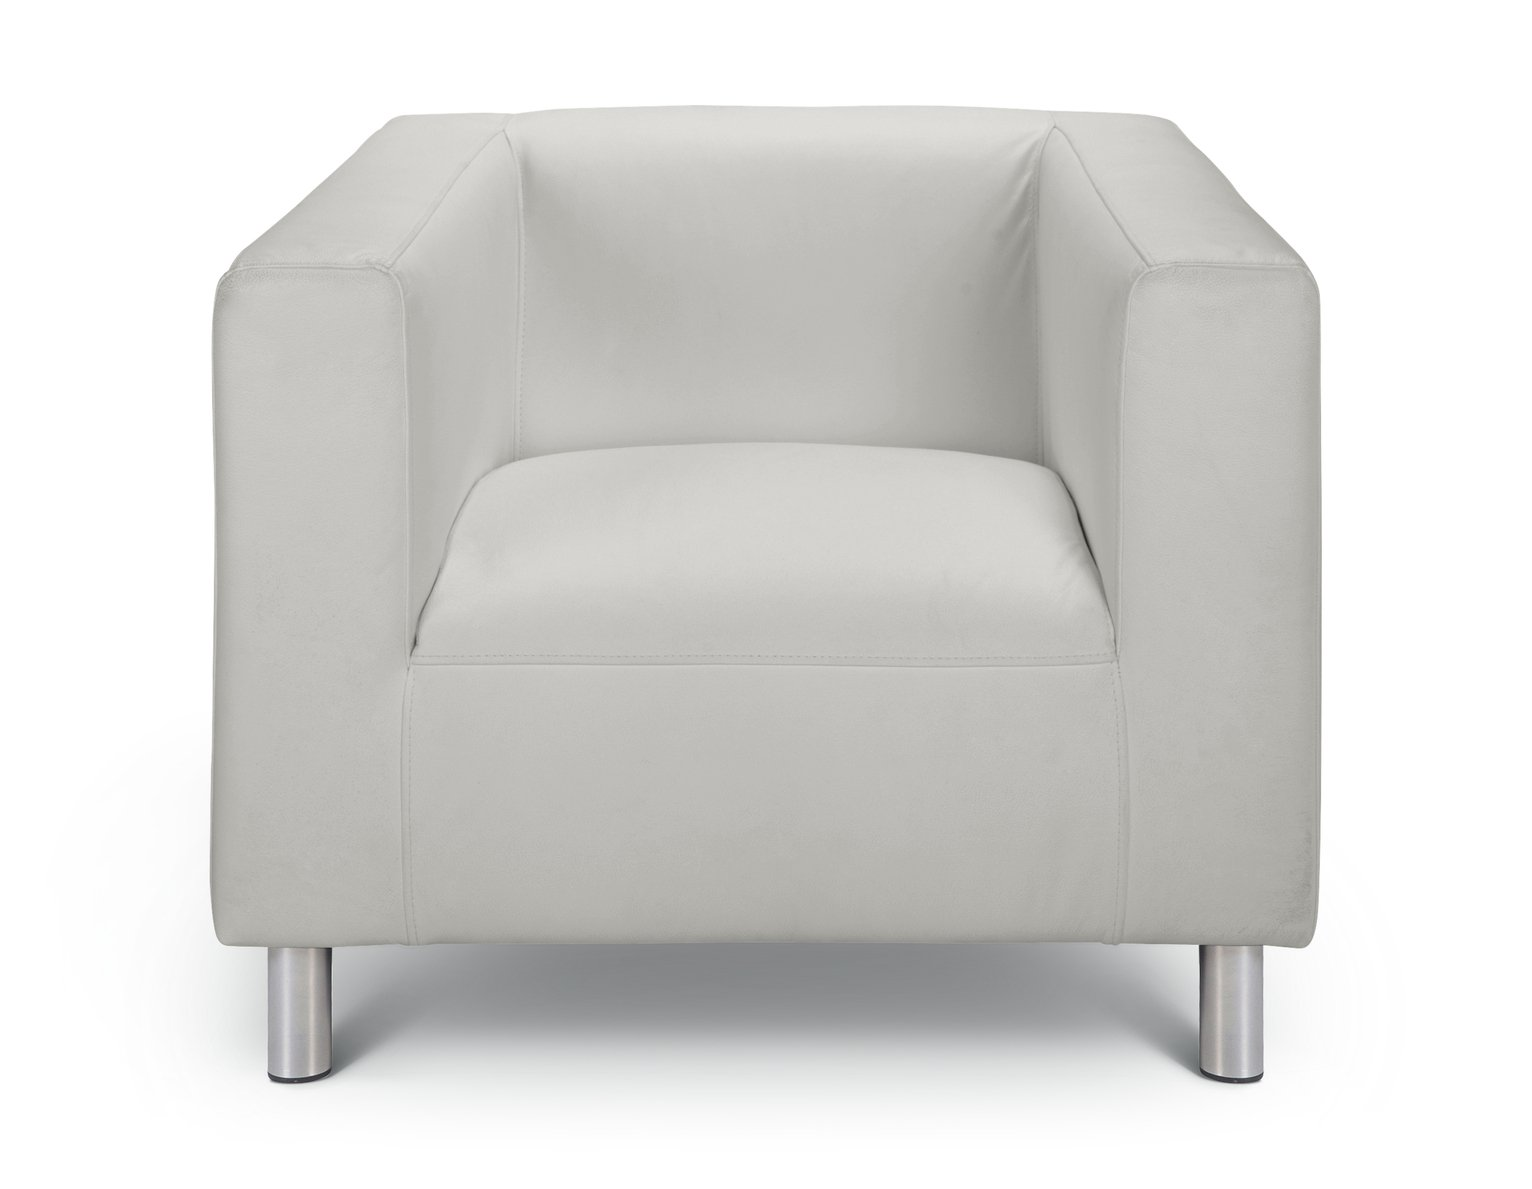 Argos Home Moda Faux Leather Armchair - White